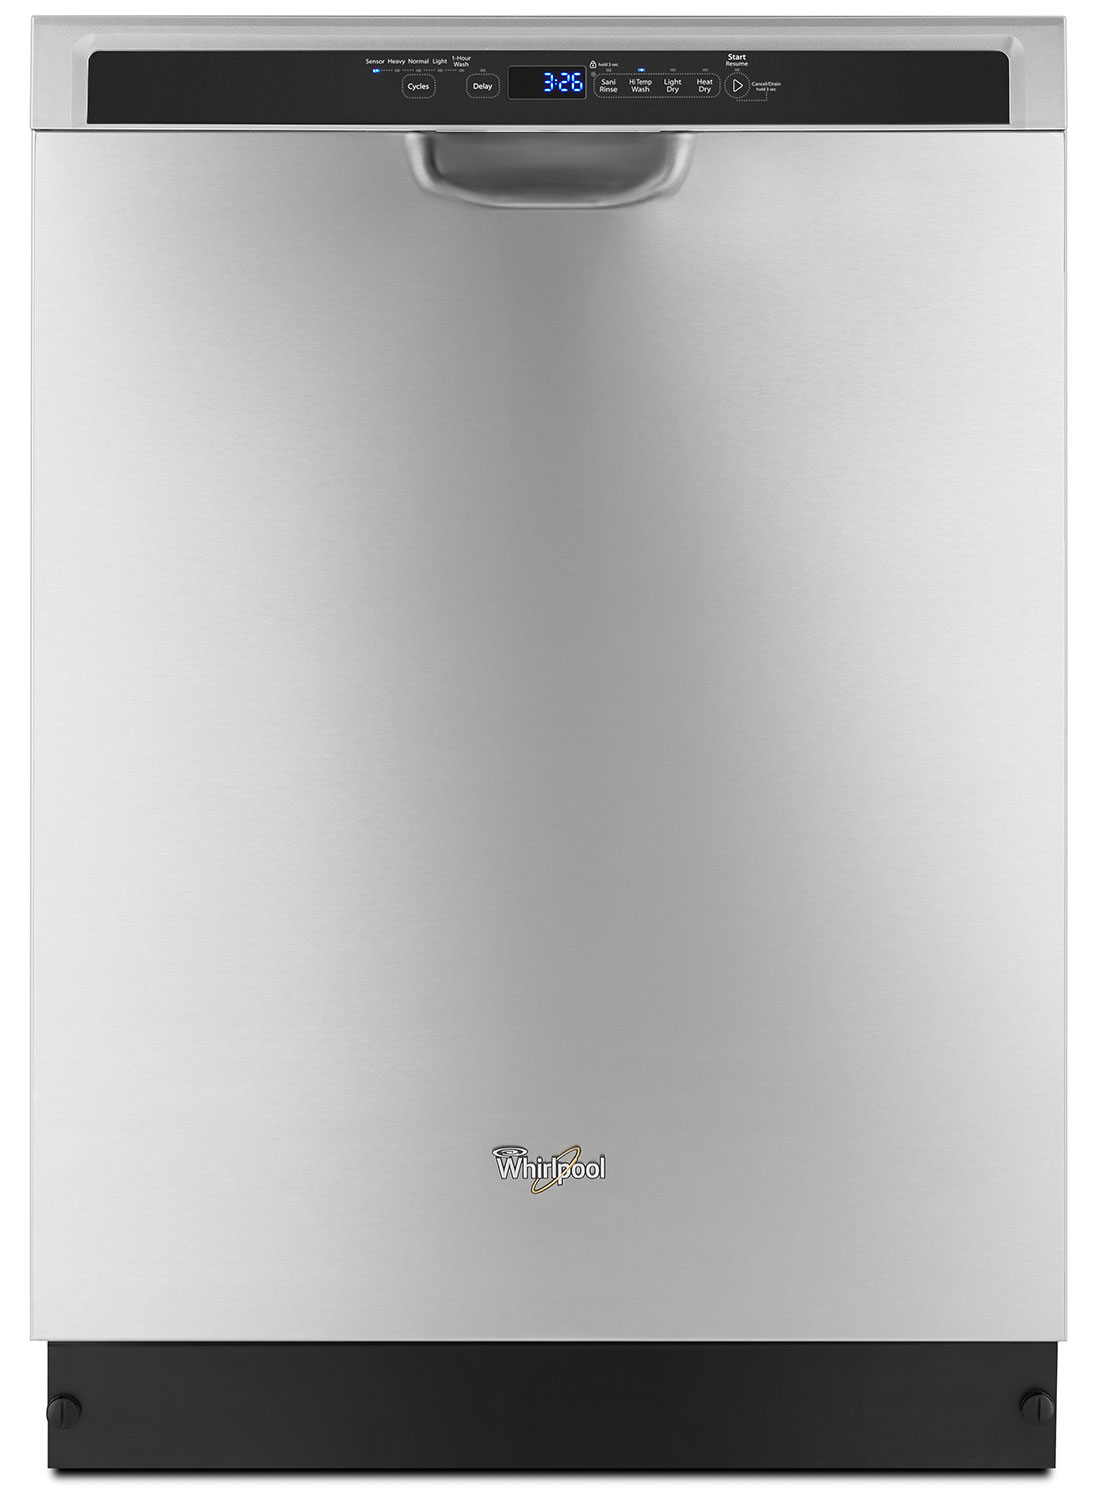 "Clean-Up - Whirlpool Stainless Steel 24"" Dishwasher - WDF560SAFM"